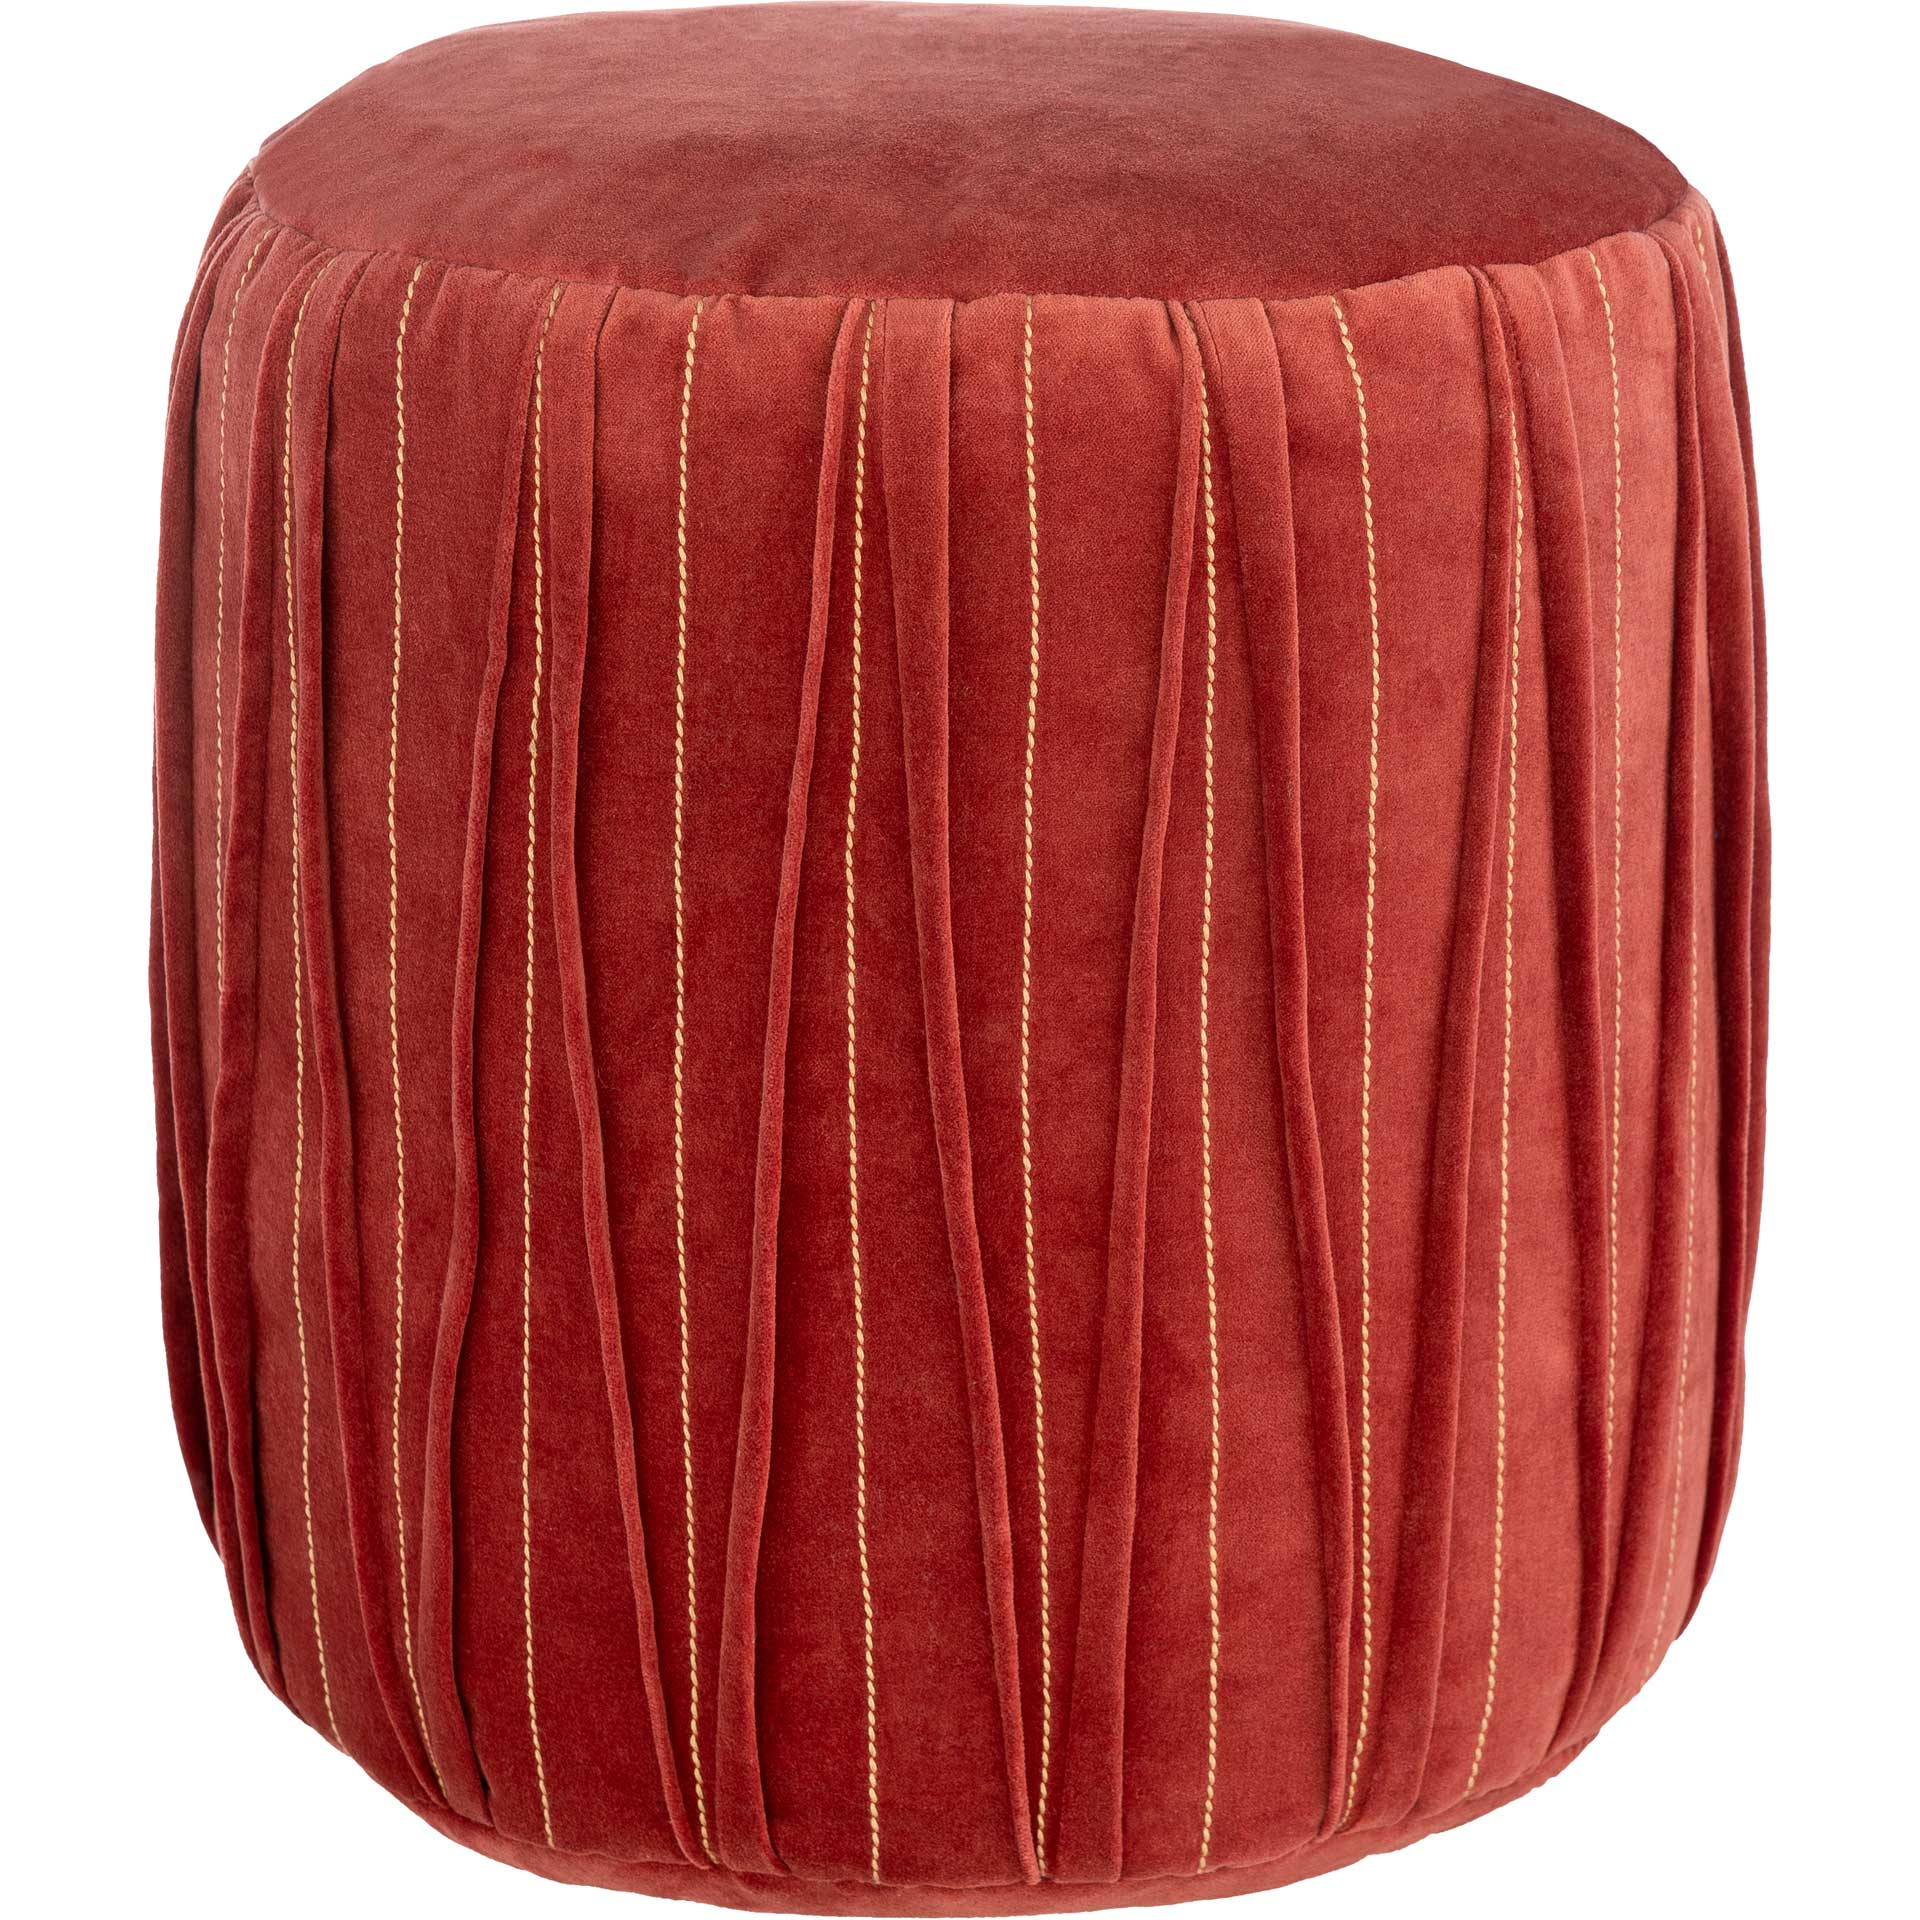 Veronica Pouf Dark Red